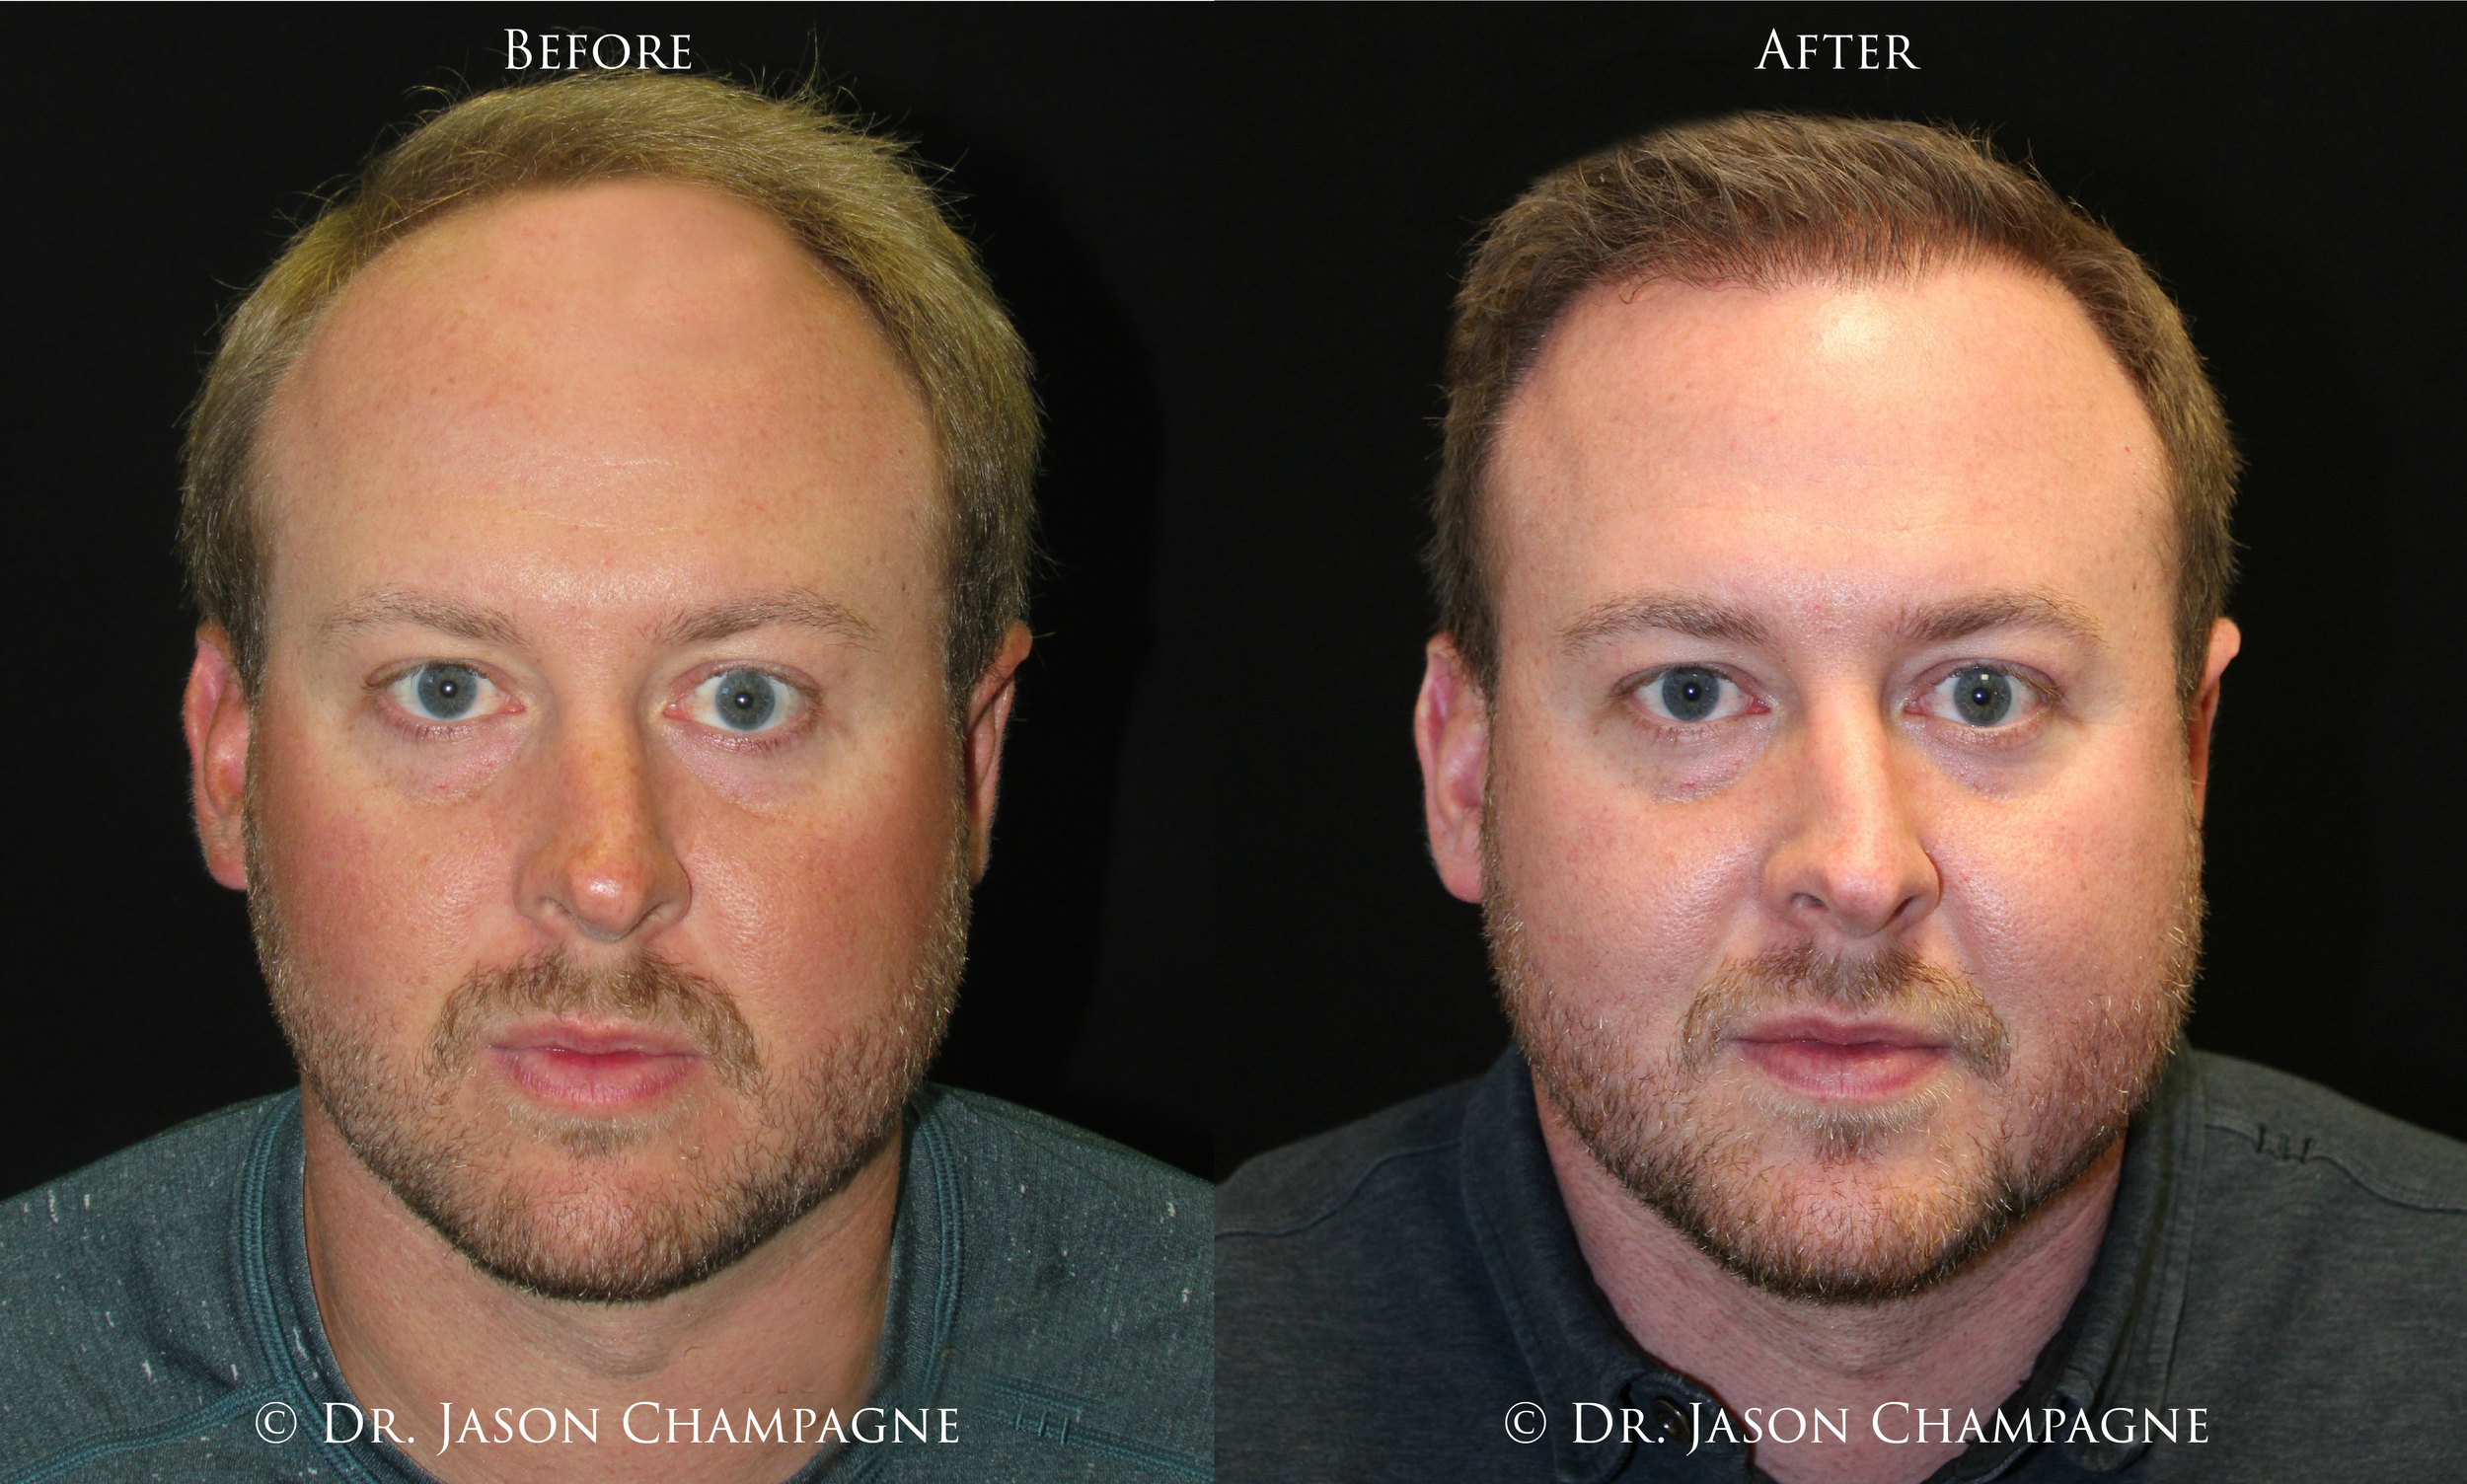 Dr-Jason-Champagne-Hair-Transplant-Before-and-After 1.22.19.png